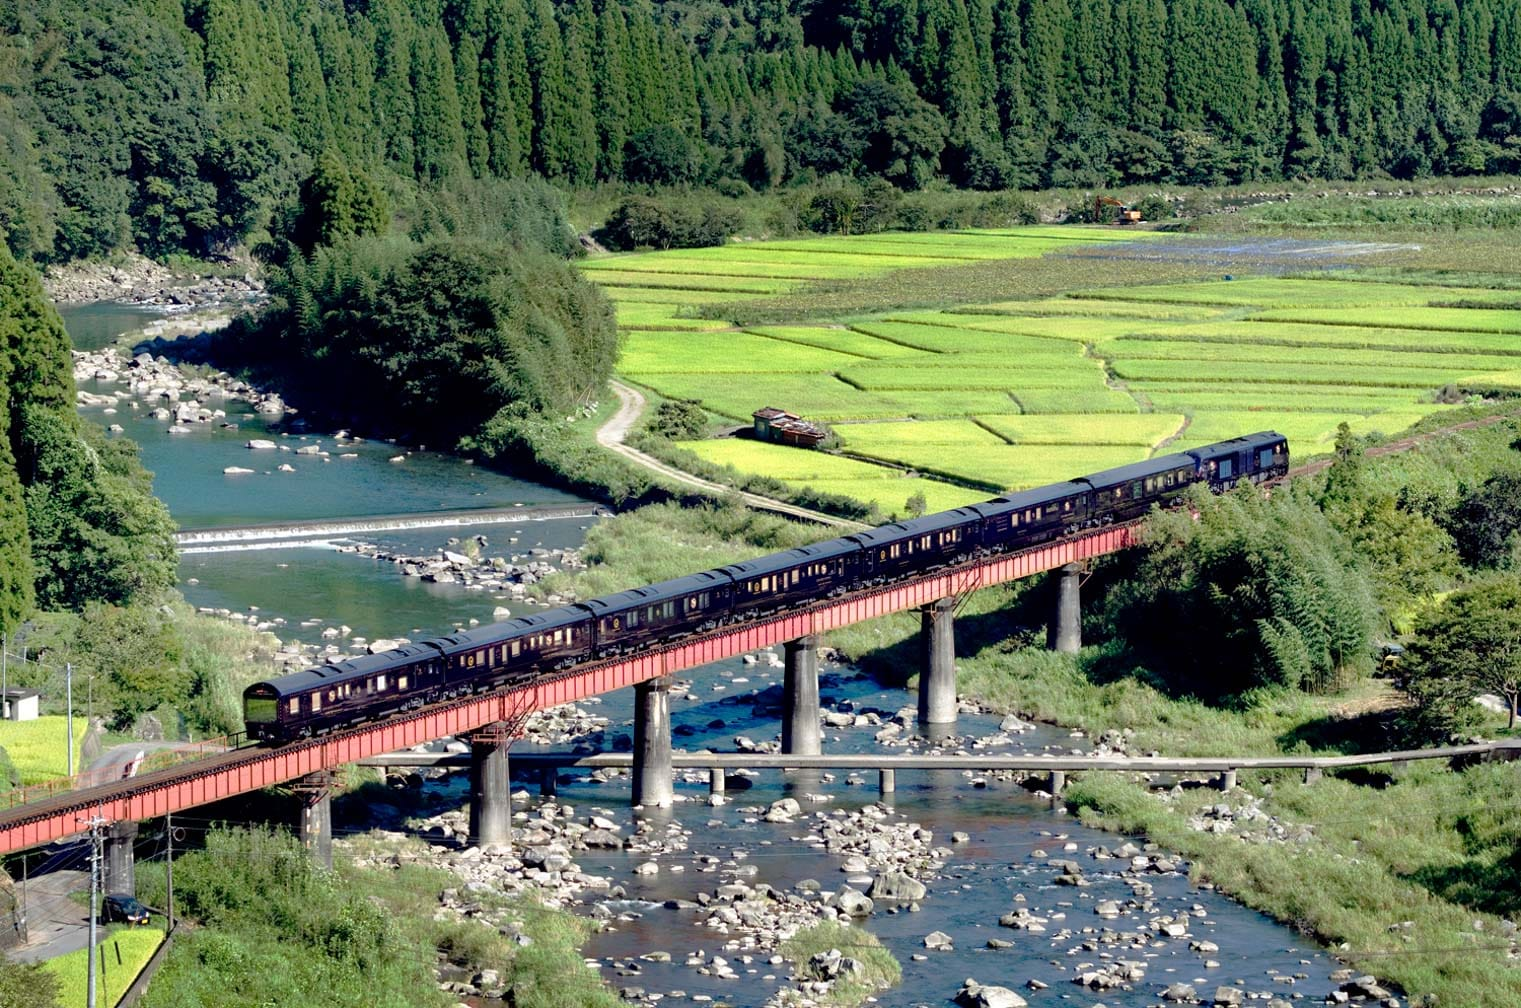 Kyushu Seven Stars train going over a bridge